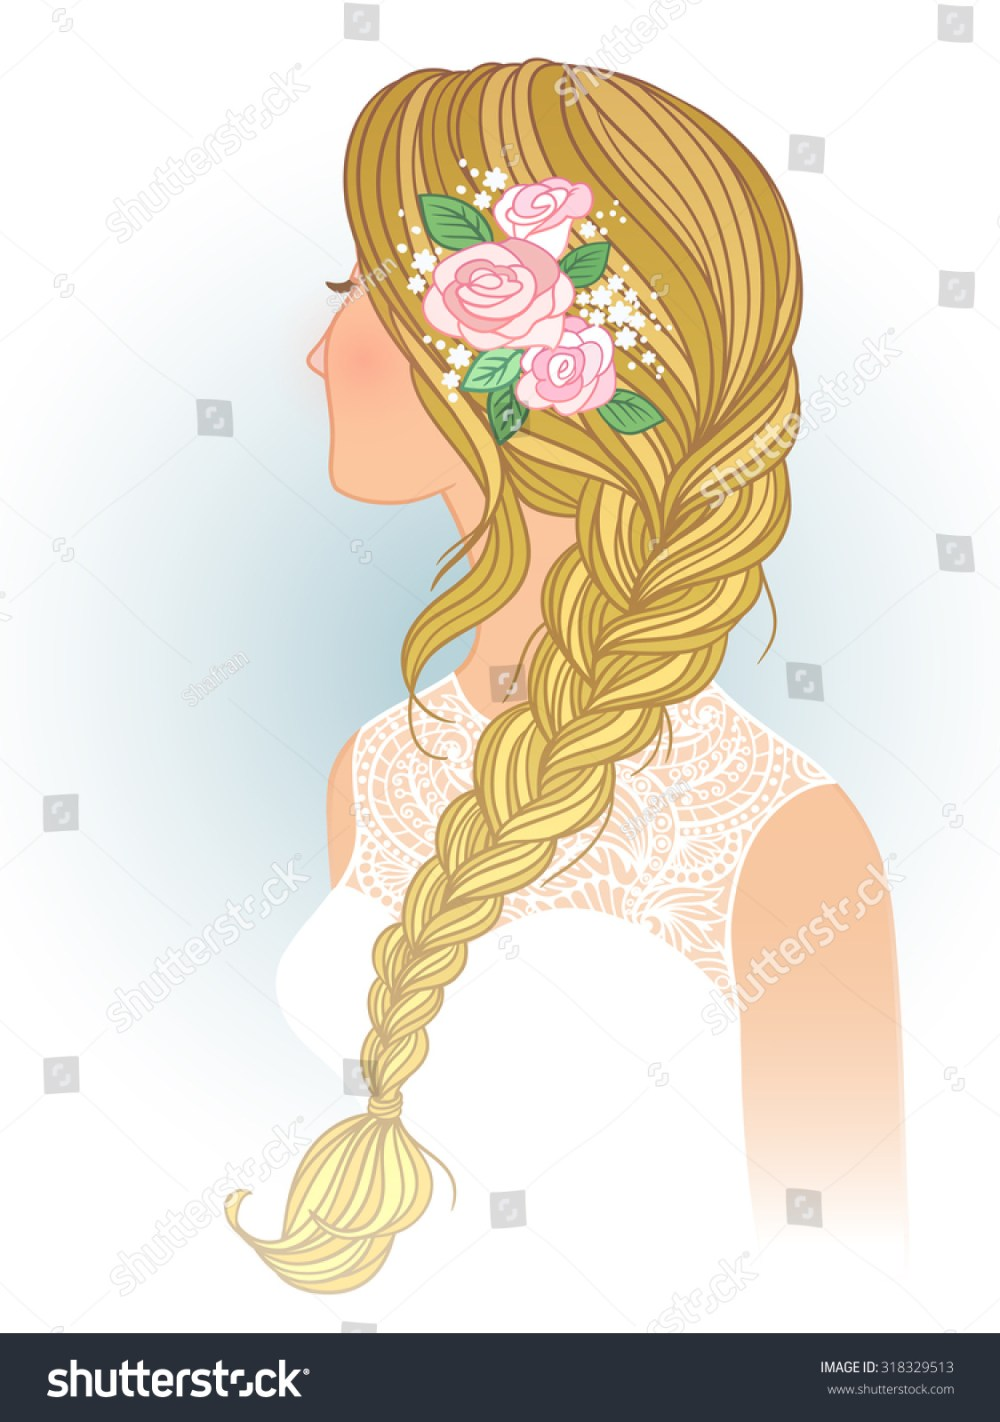 medium resolution of girl with tress wedding hair style with flowers from the back hand drawn vector